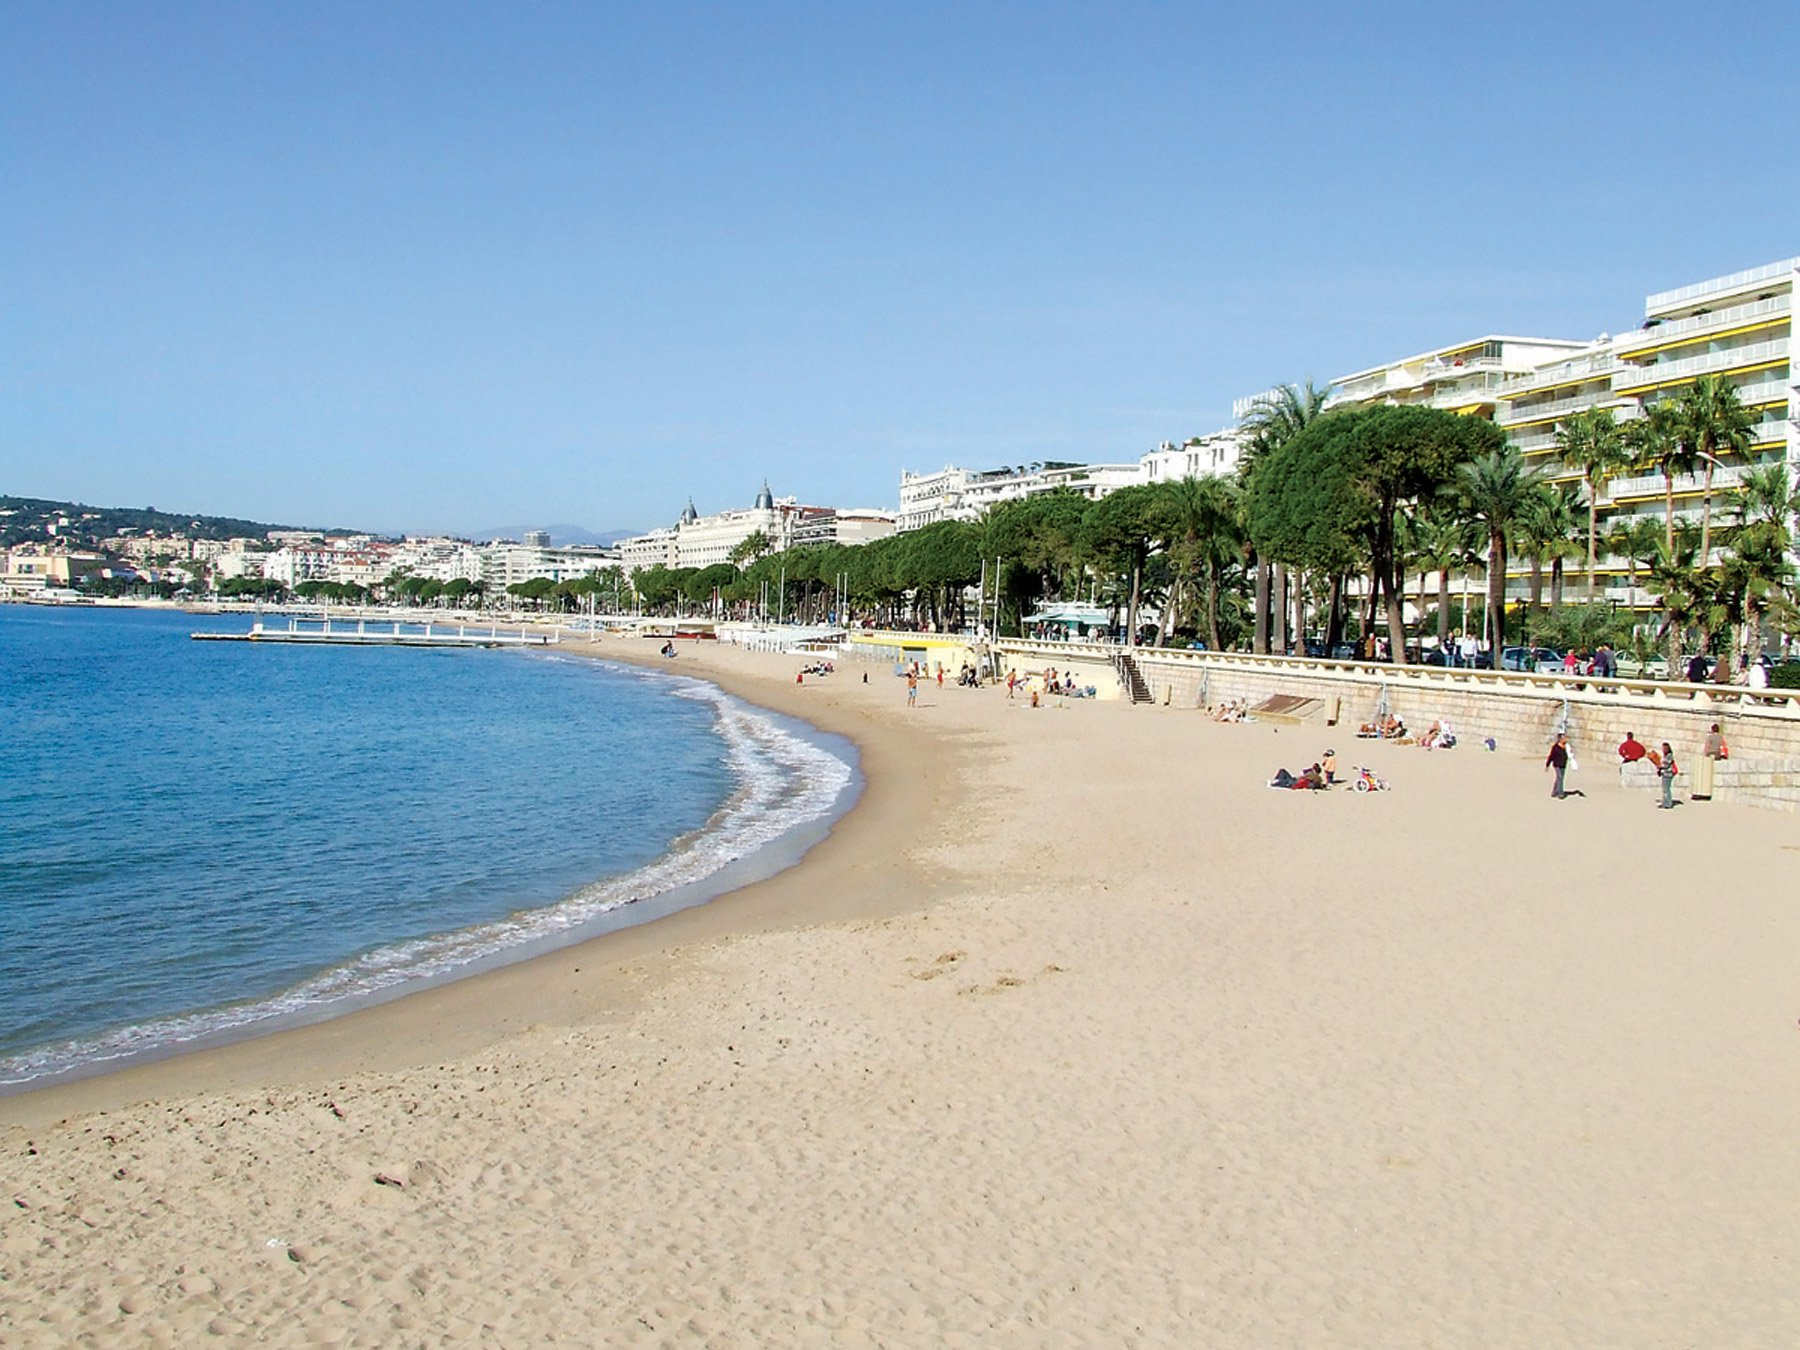 frankreich_cannes_strand